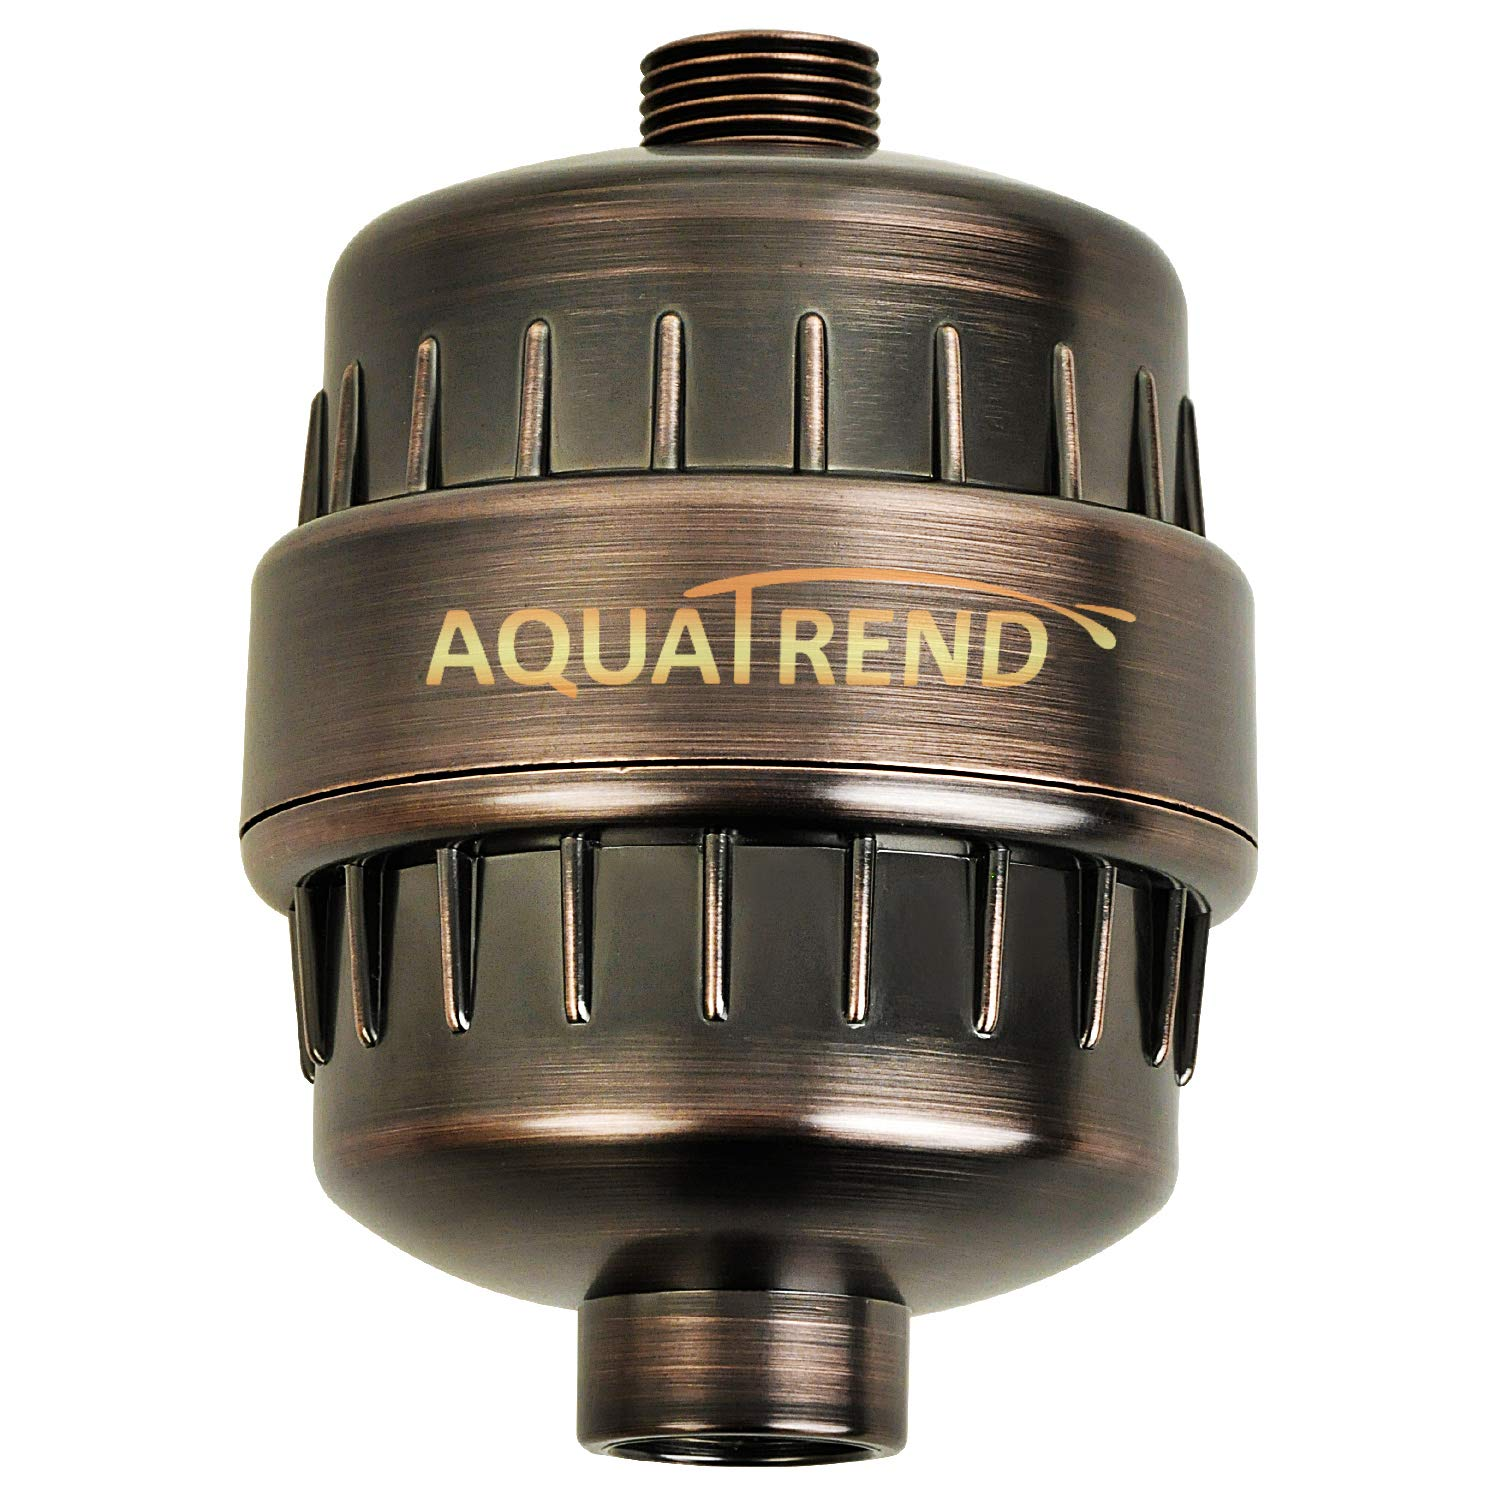 AQUATREND Oil-Rubbed Bronze Universal 15-Stage Shower Filter Shower Head Filter for Hard Water Reduce Chlorine,Dry Itchy Skin,Dandruff, Improve the Condition of Your Skin,Hair and Nails